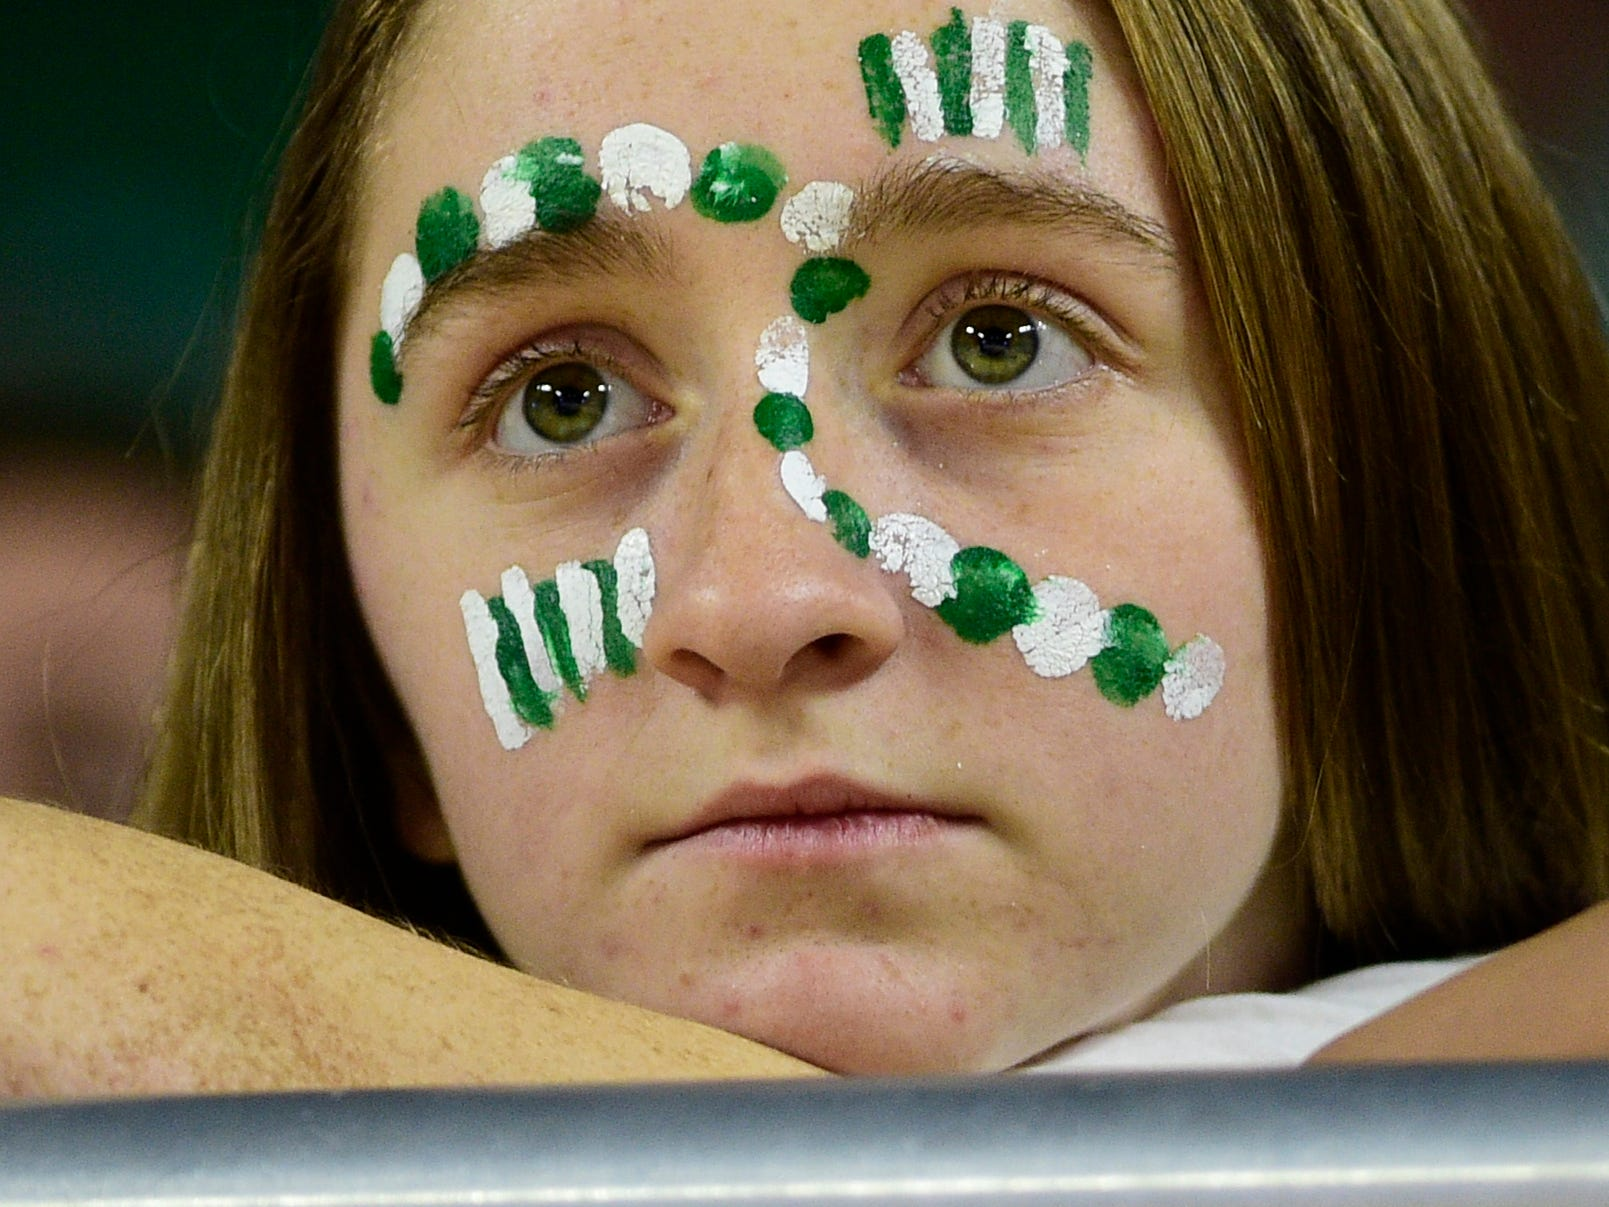 A Midway fan watches as the team begins falling behind during a game between Midway and Gibson County at the TSSAA girls state tournament at the Murphy Center in Murfreesboro, Tennessee on Friday, March 8, 2019.